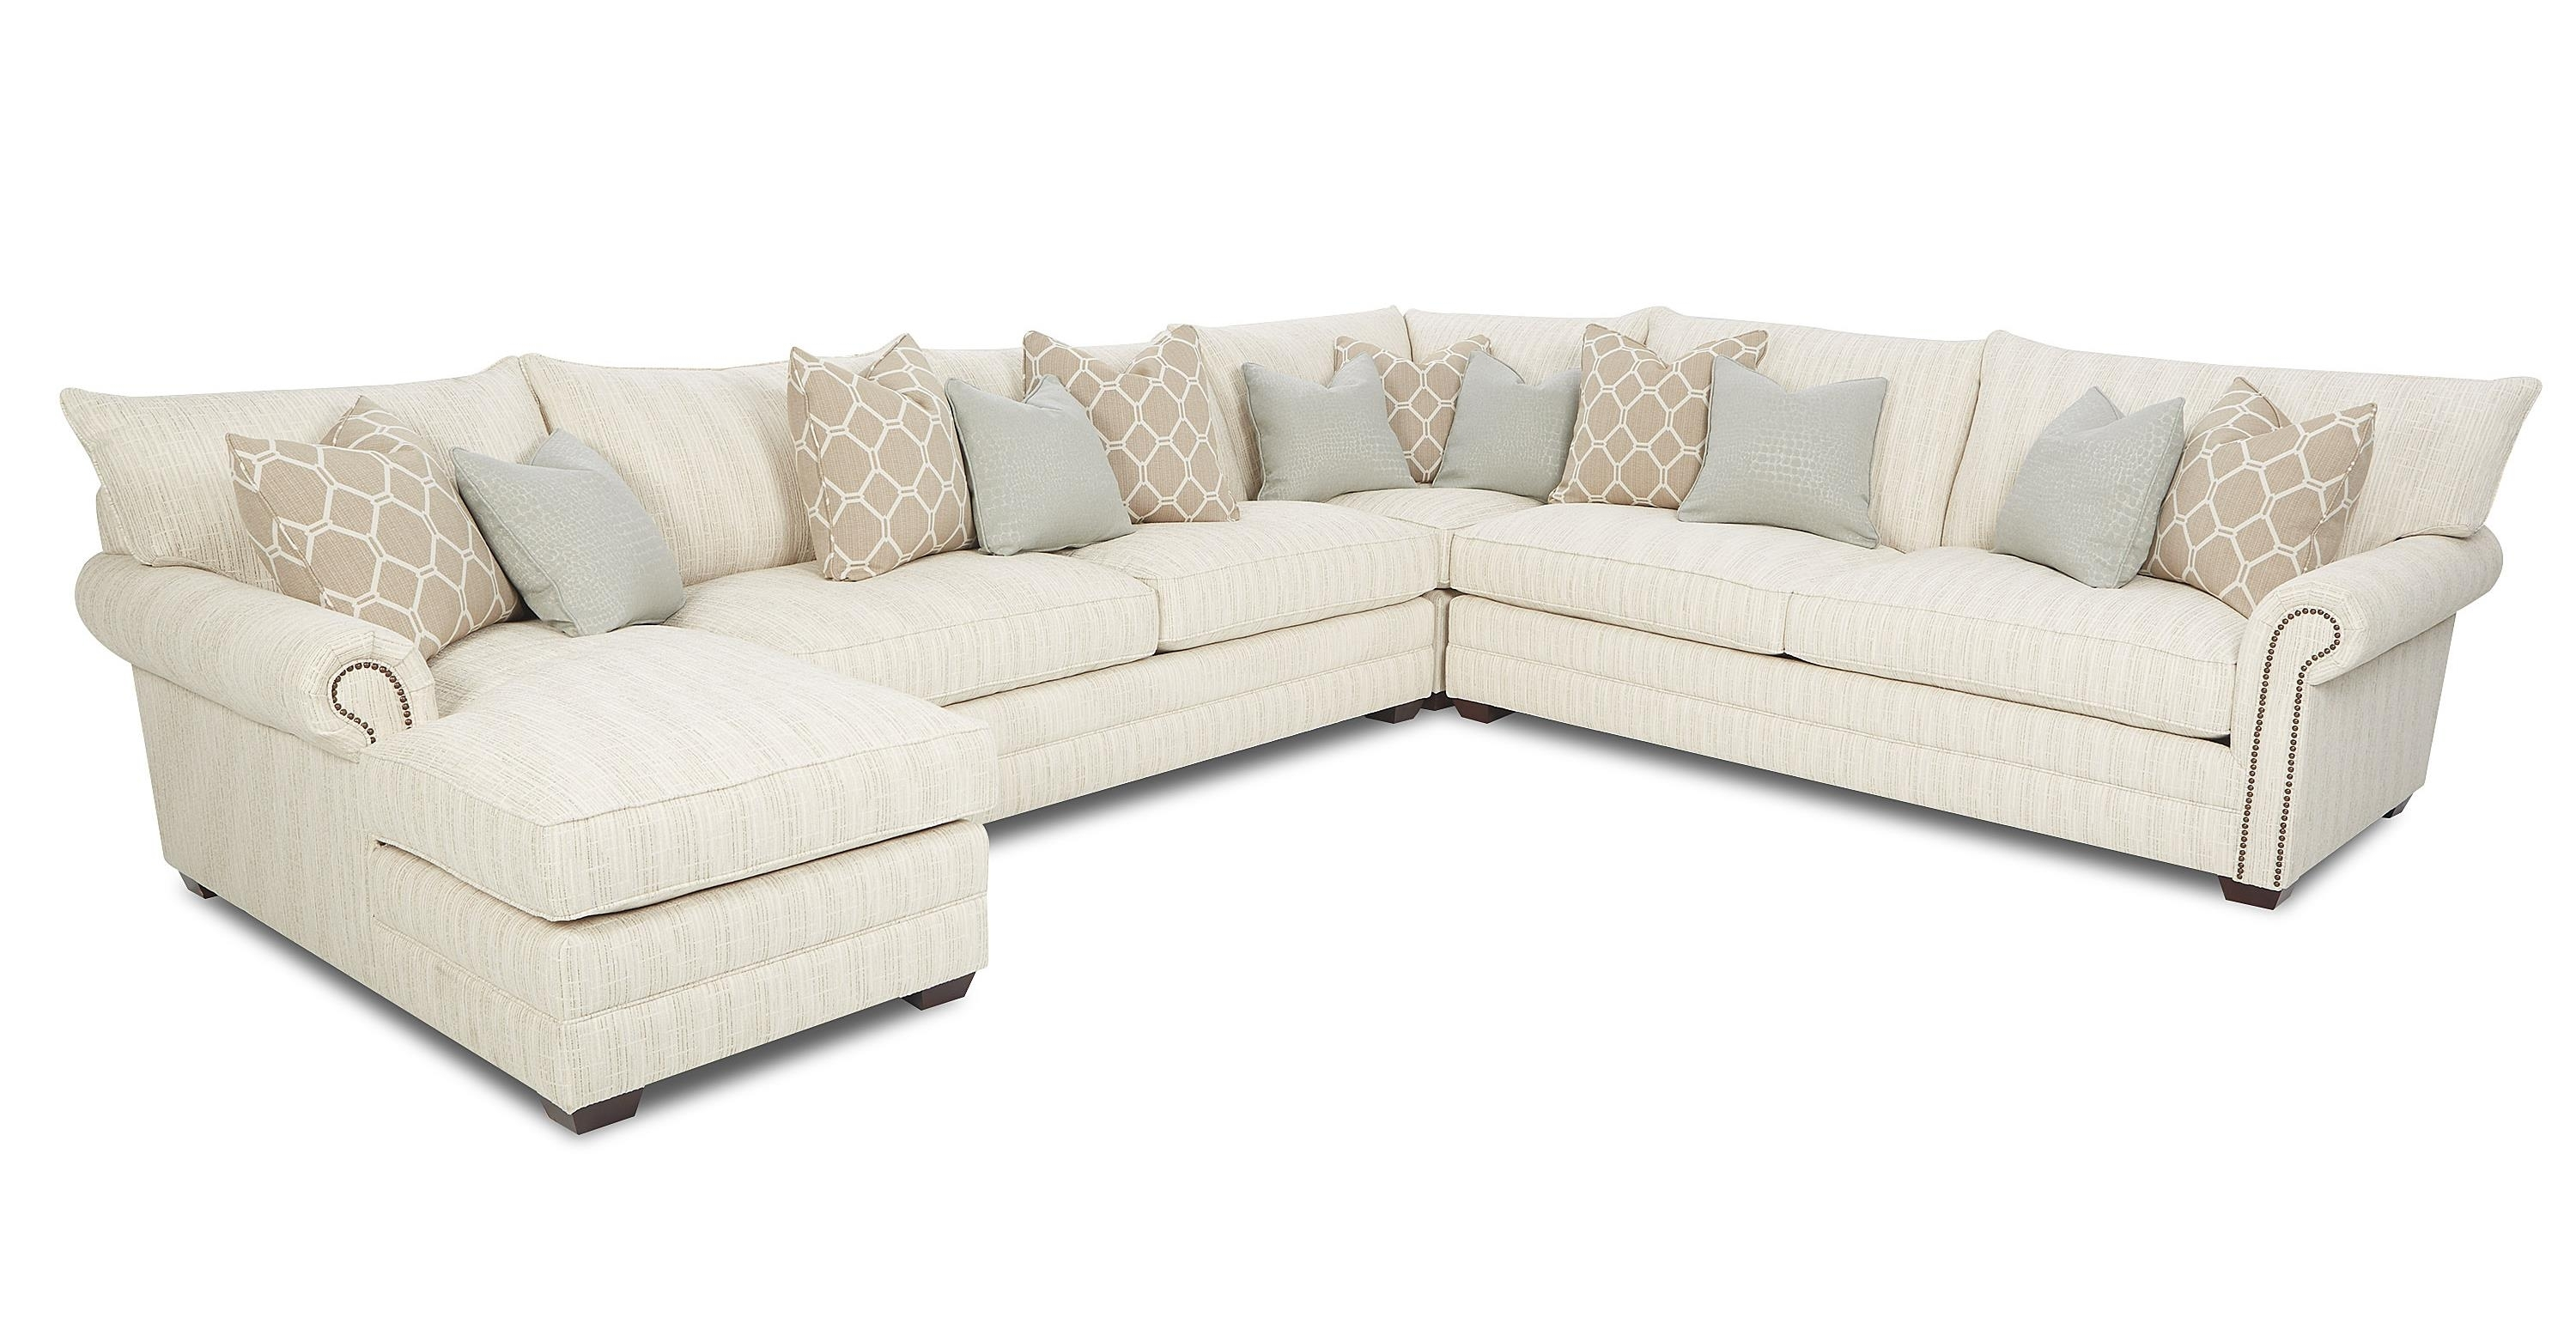 Featured Image of Sectional Sofas With Nailheads